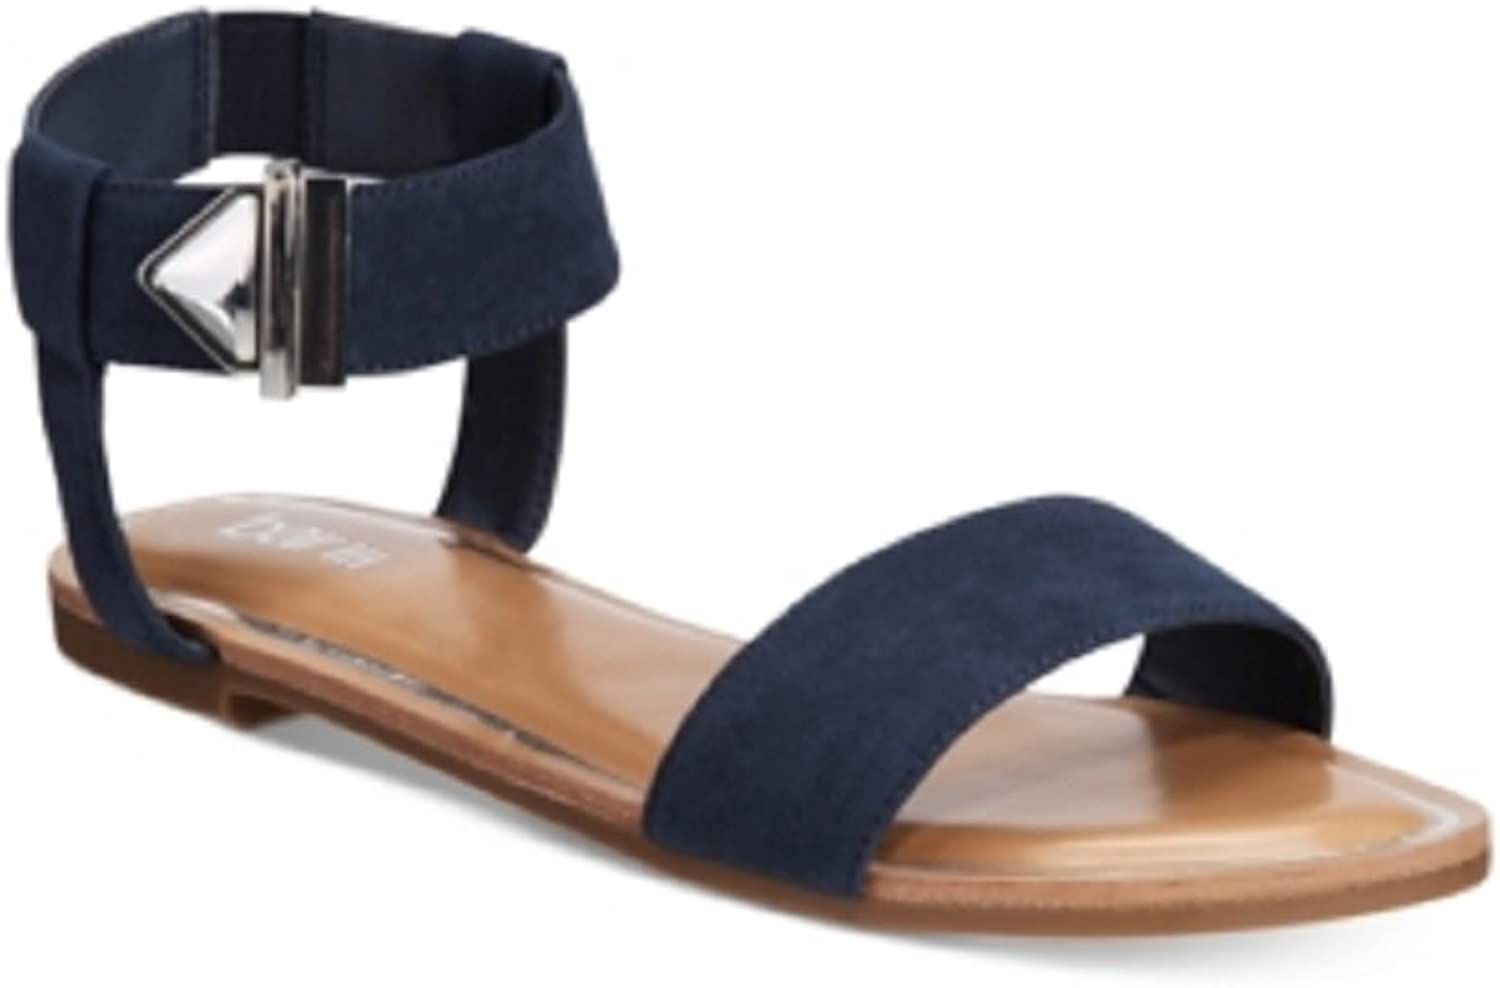 Bar III Womens Victor Fabric Open Toe Casual Slide Sandals, Navy, Size 5.5